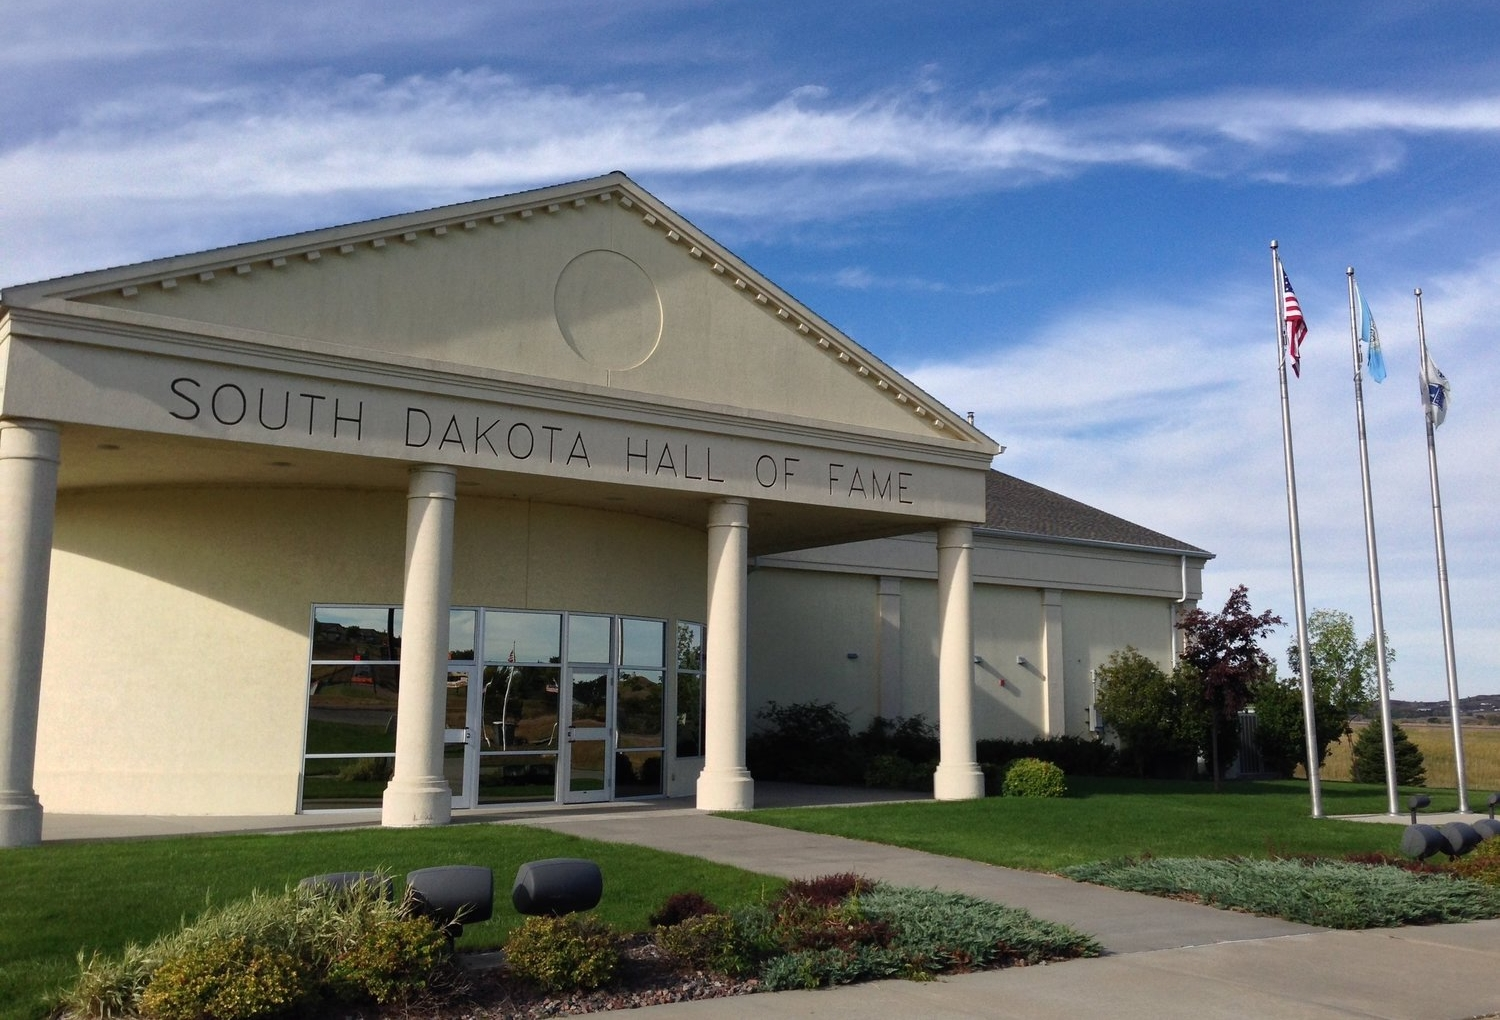 The South Dakota Hall of Fame is located in Chamberlain, South Dakota.